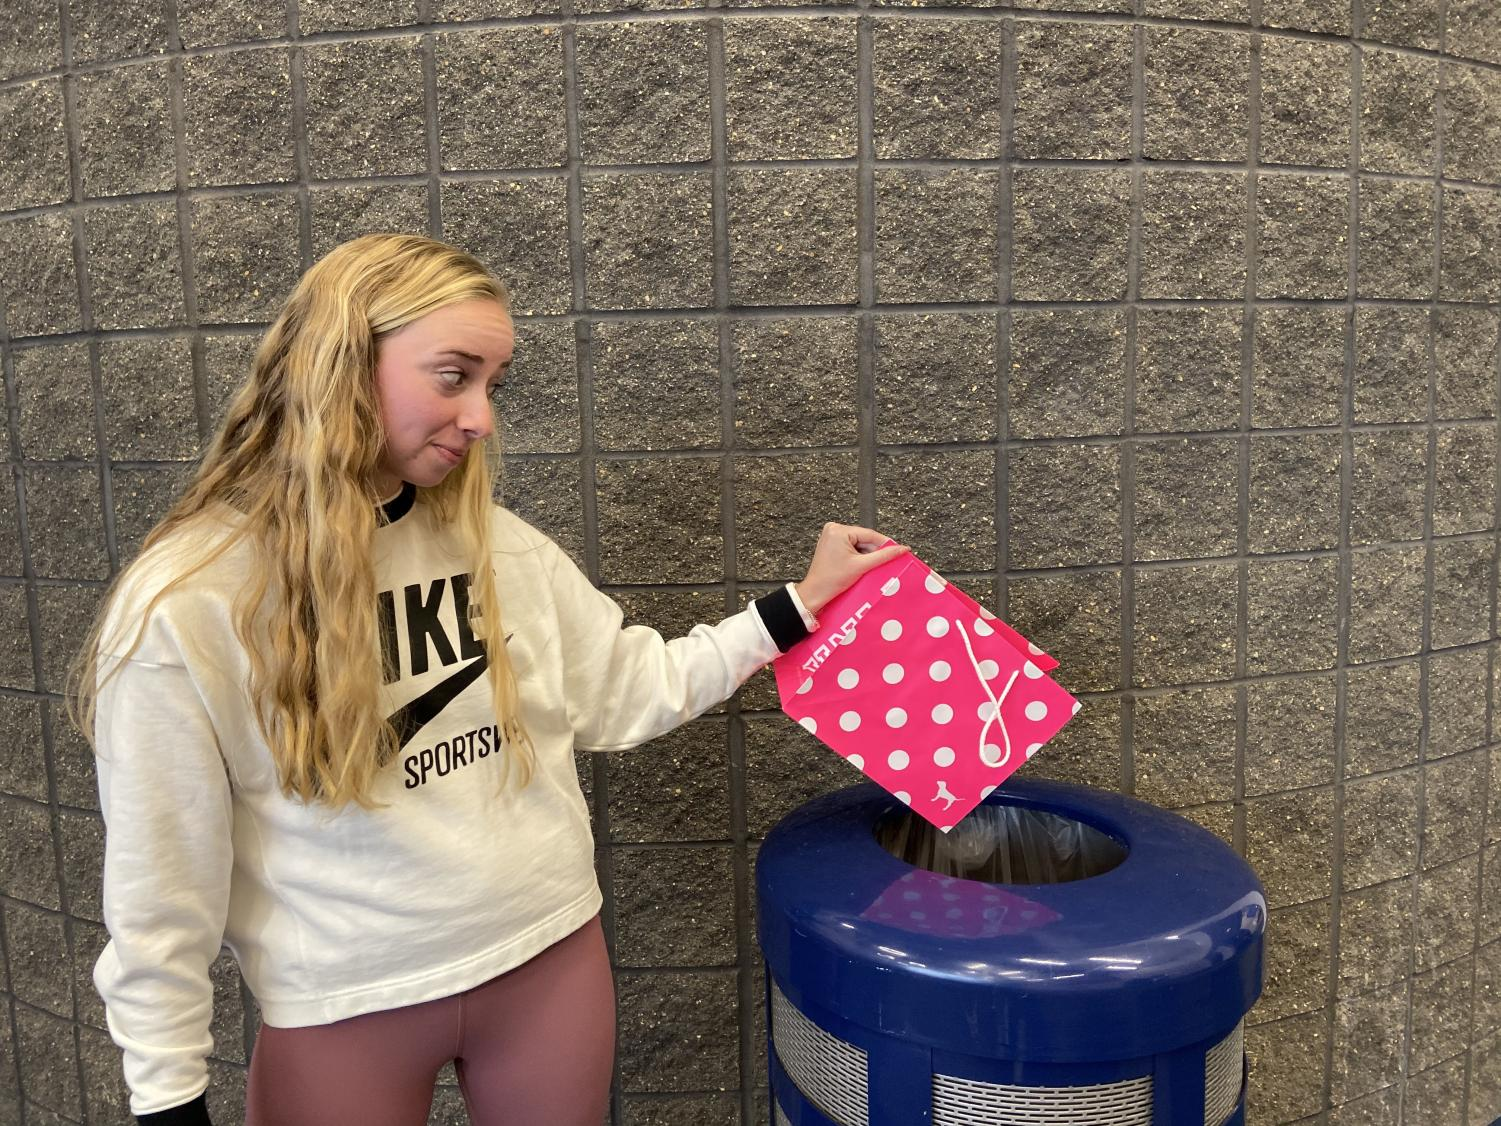 Senior Claire Fields shows her disapproval for Victoria's Secret's lack of leadership in promoting body positivity with the cancellation of their annual fashion show on November 26, 2019.